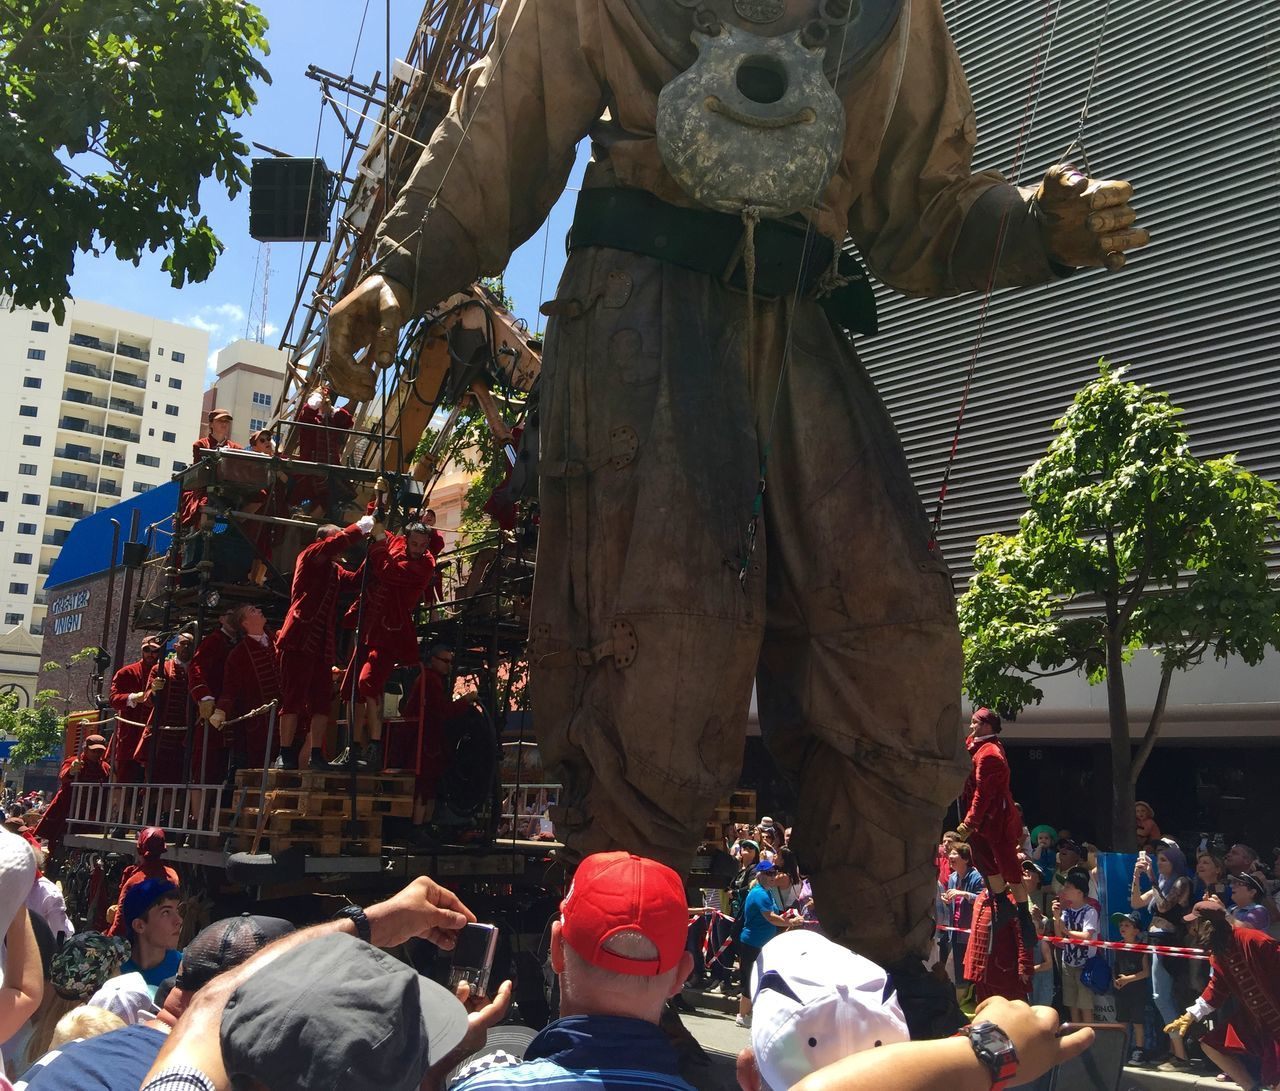 PERTH, AUSTRALIA-FEBRUARY 14, 2015: Journey of the Giants, Giant Marionette Diver and Puppeteers, public International Arts Festival Art Art Event Australia Australianshepherd Belts And Pulleys City Cityscape Crane Crowds Culture Diver Festival Giant Human International Journey Marionette People Puppeteers Walking Winchester Wooden